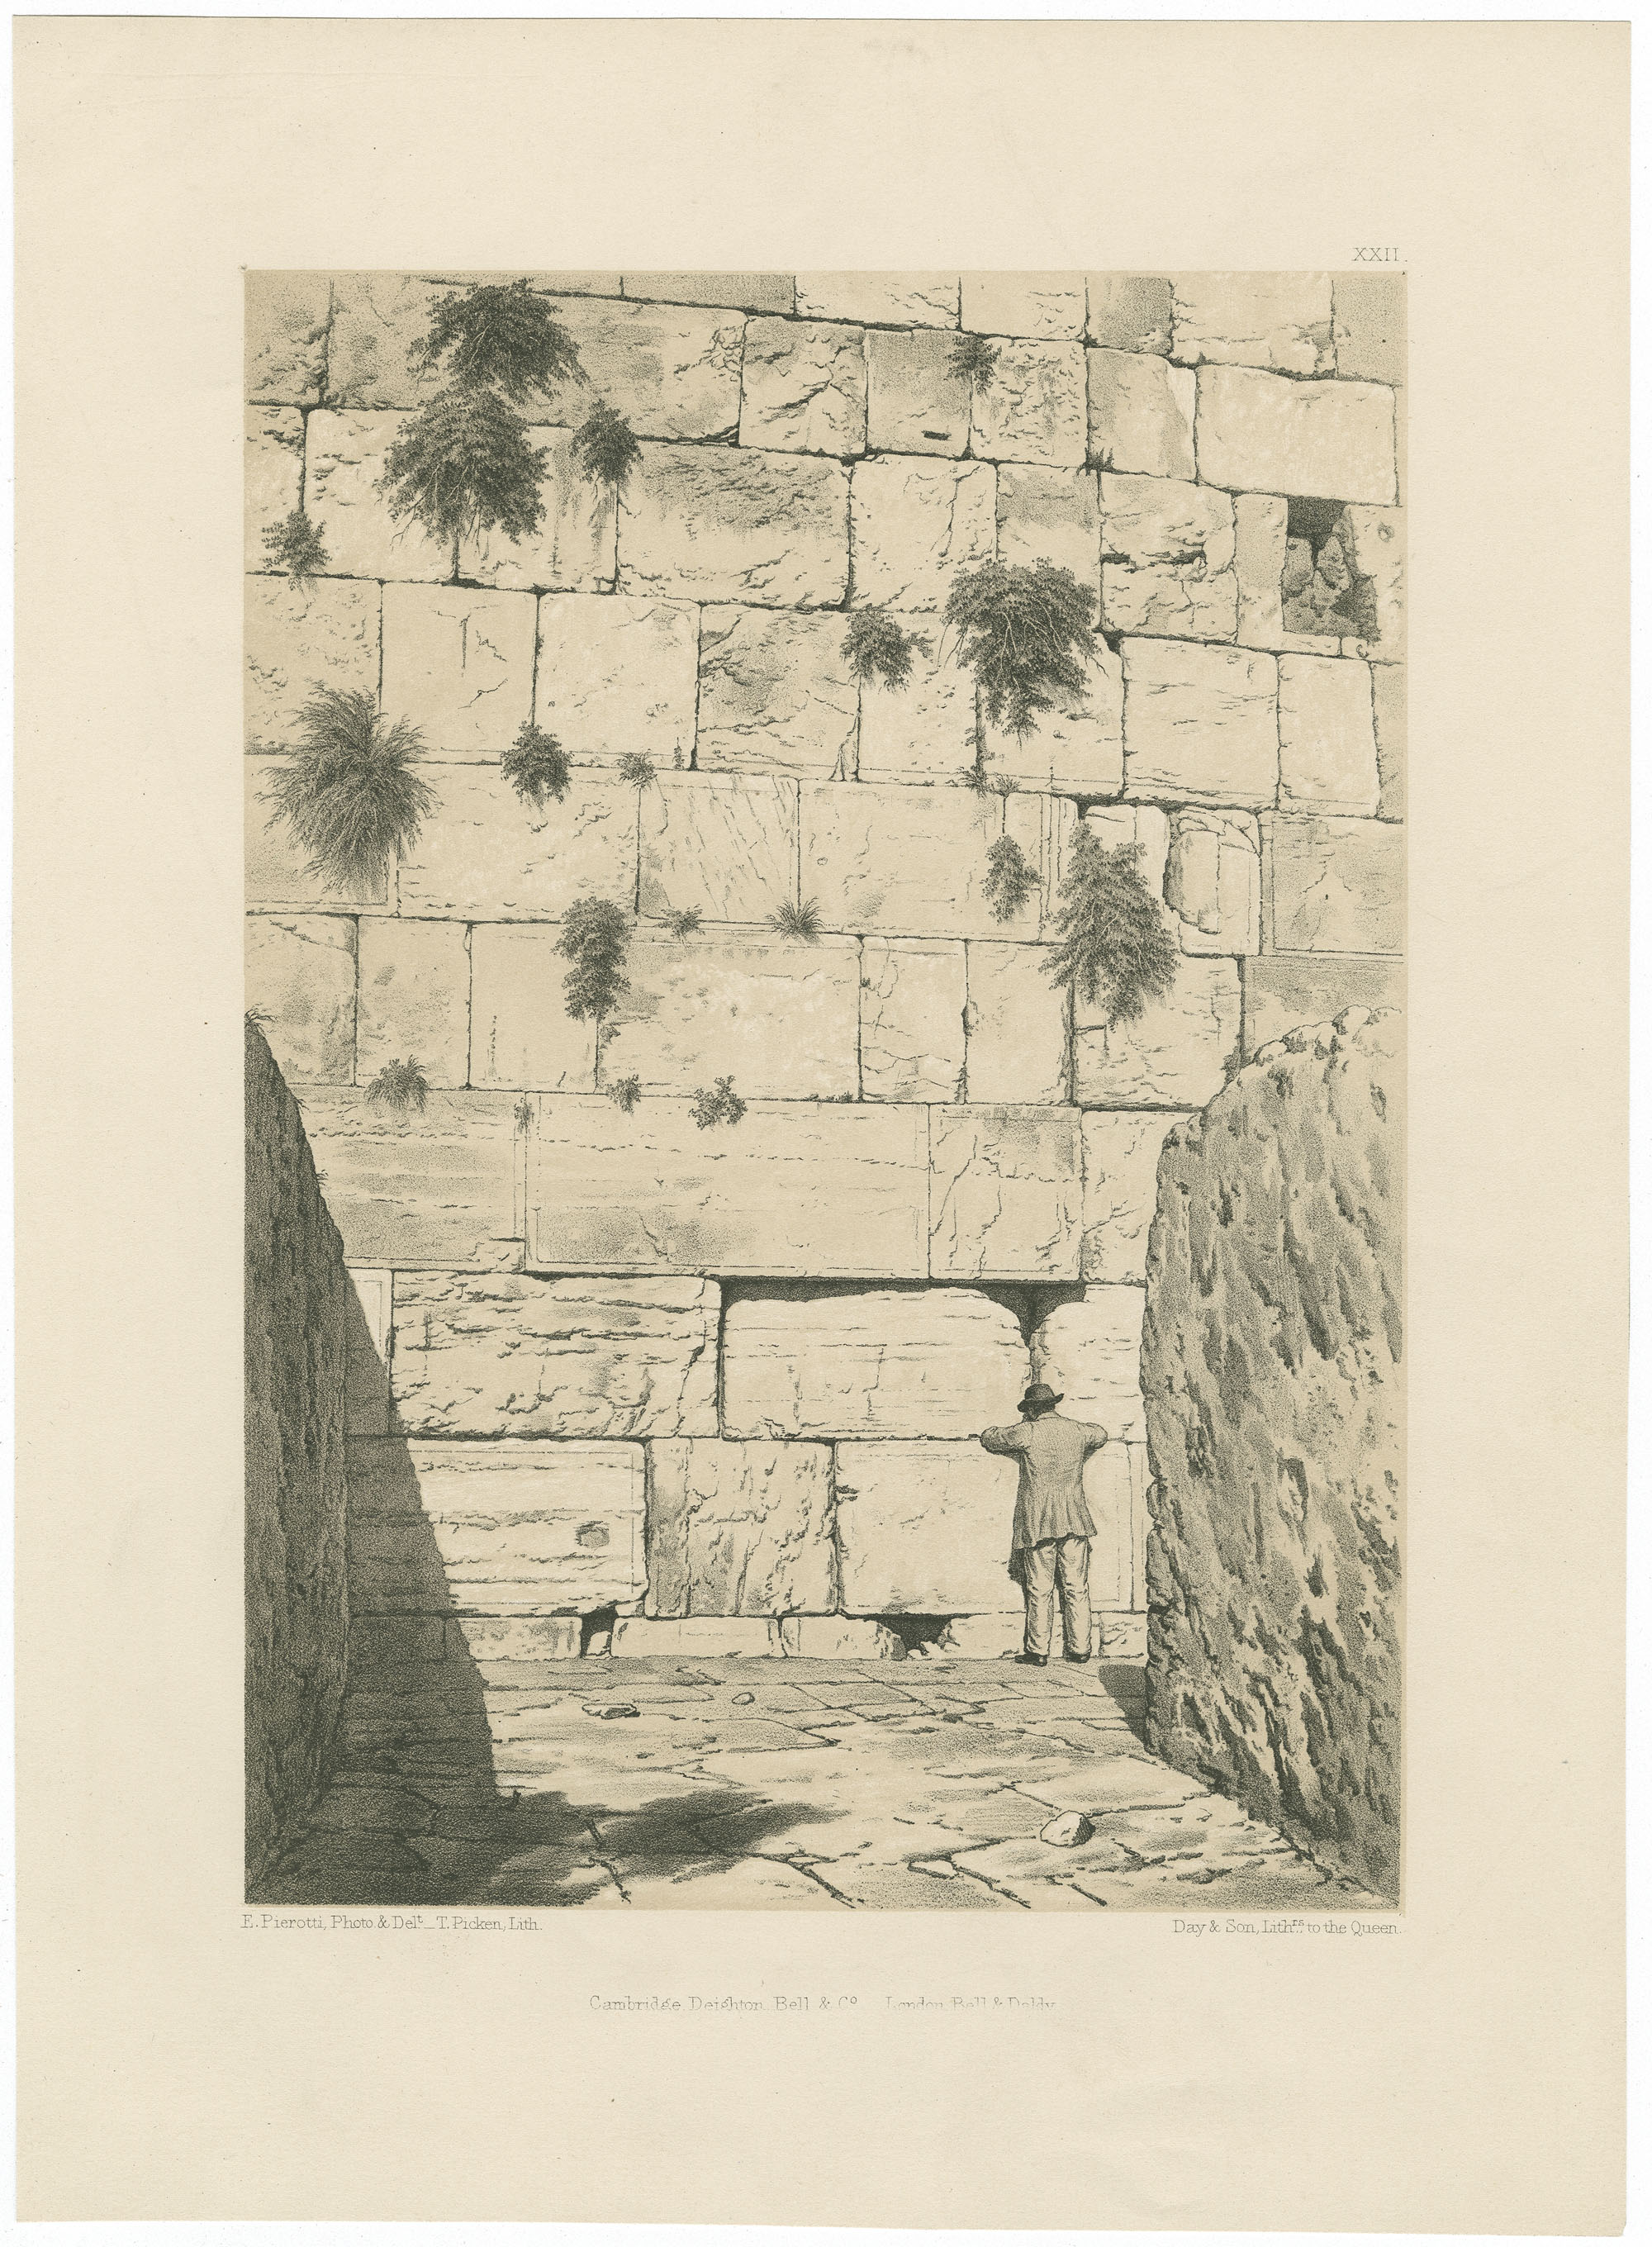 [Wailing-place of the Jews. A portion of the ancient wall of the temple enclosure.]